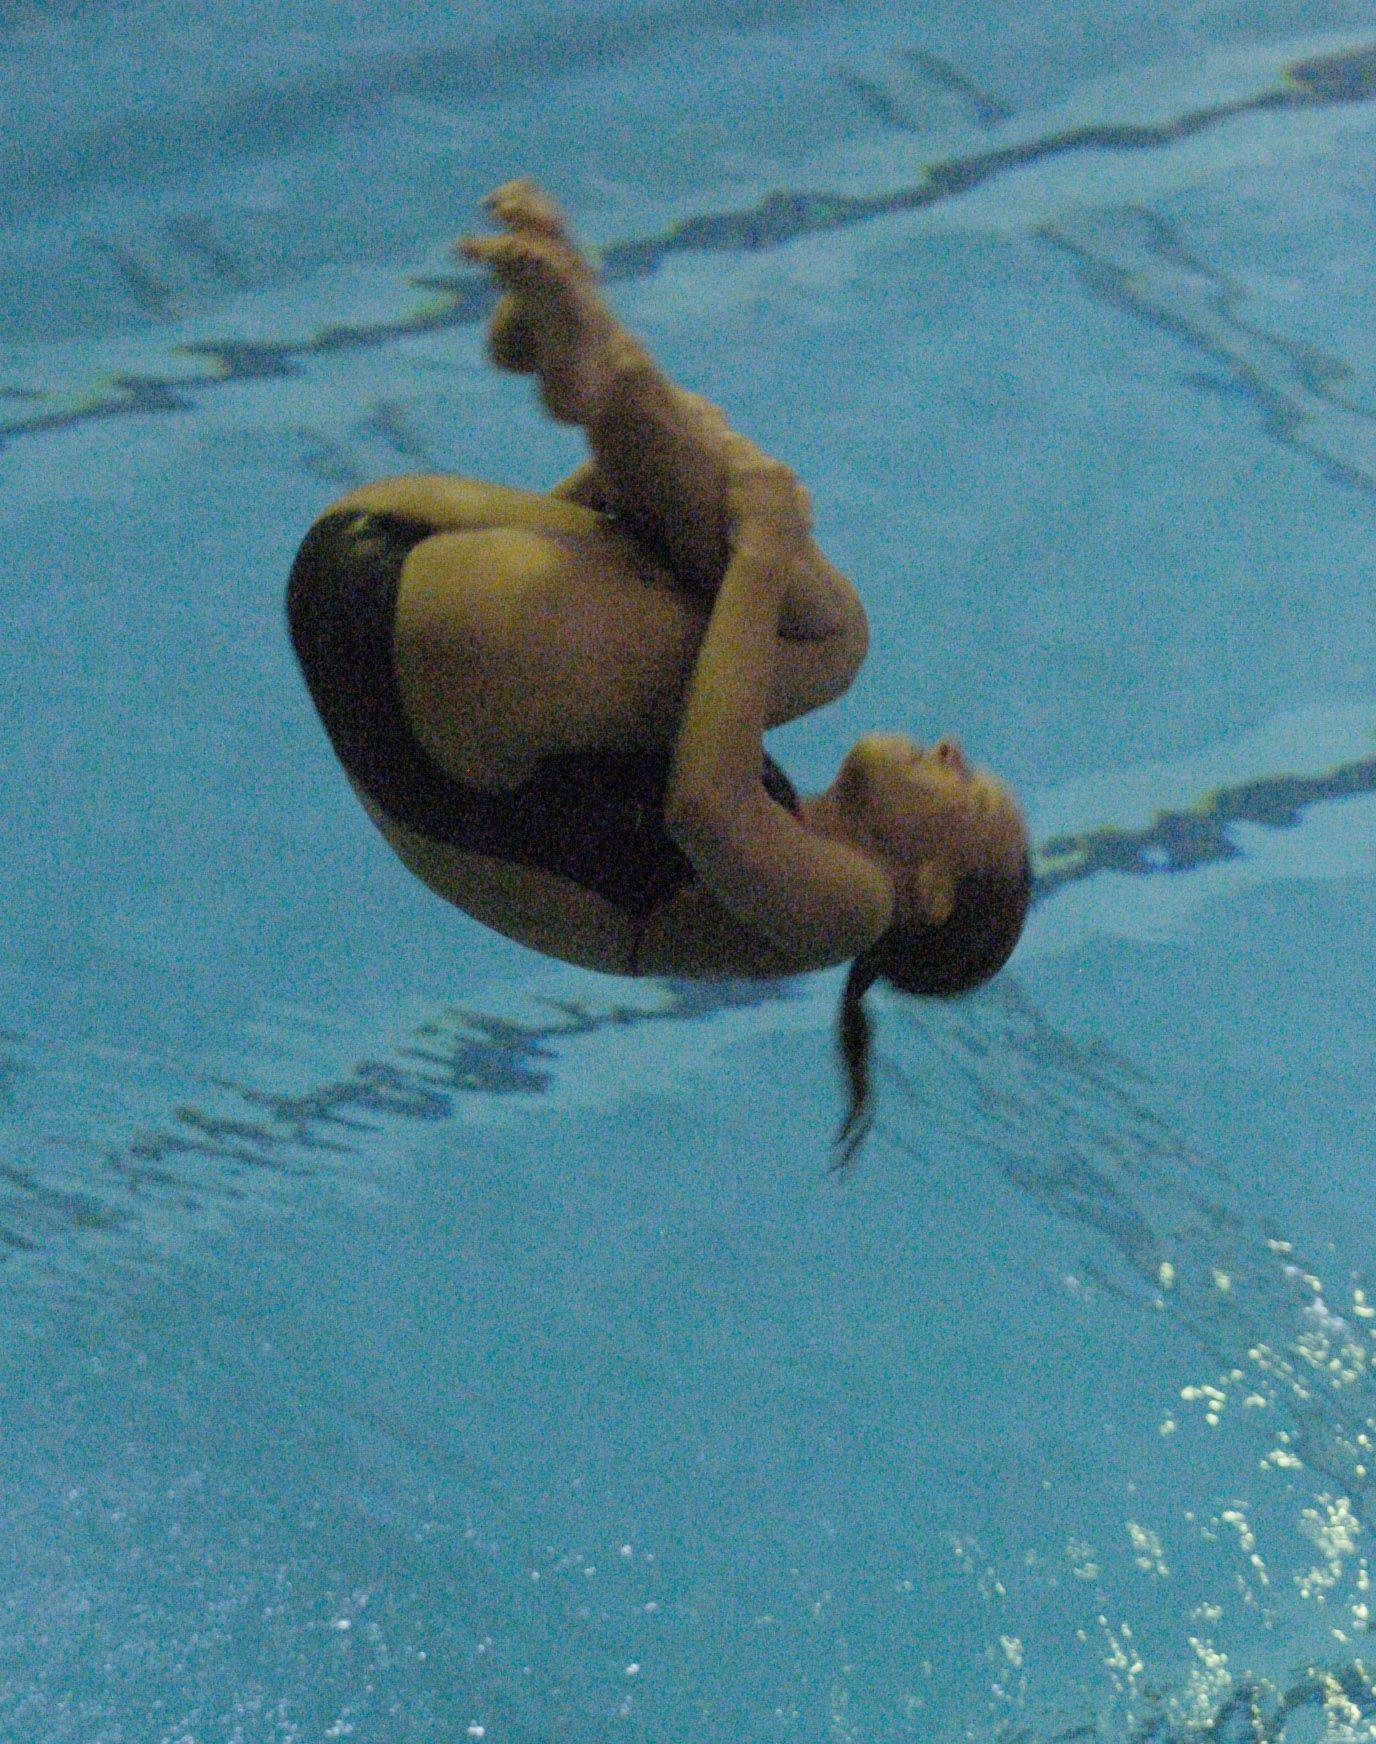 Lauren Mikulecky of Neuqua Valley competes during Saturday's state diving finals at Evanston.